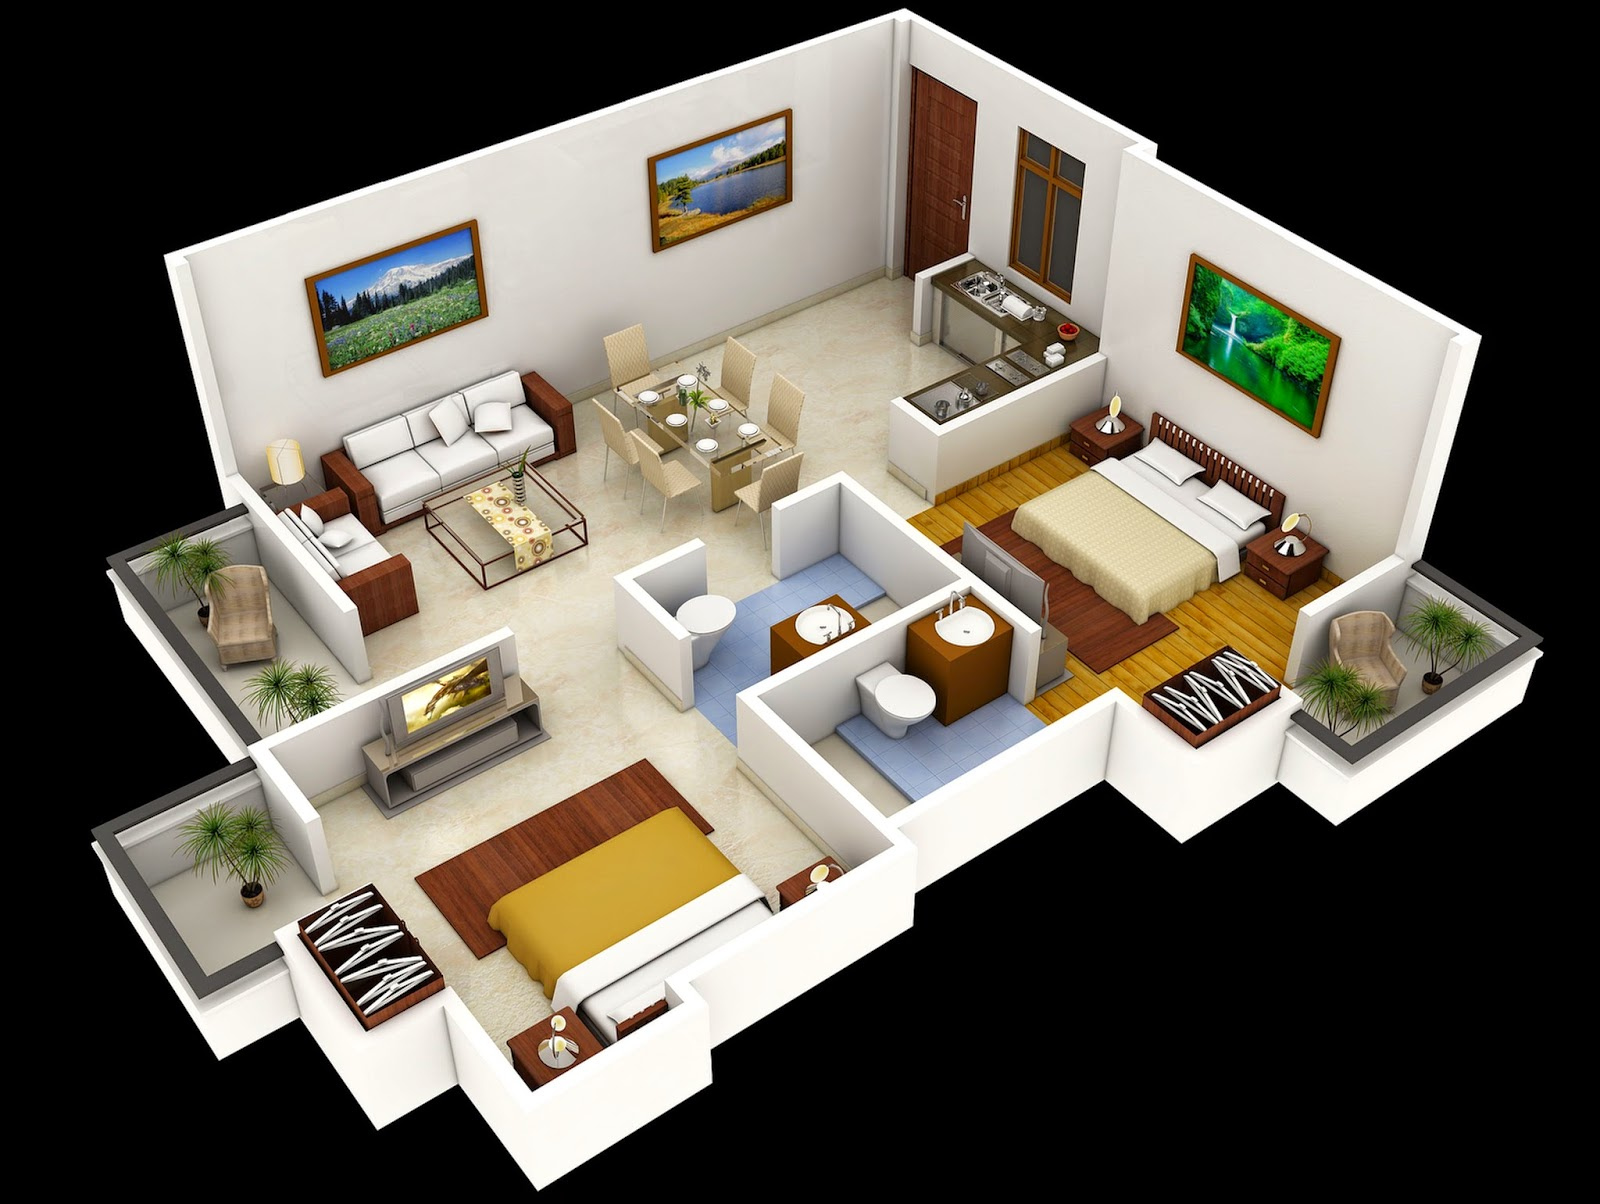 Two bedroom house interior design for 2 bedroom layout design